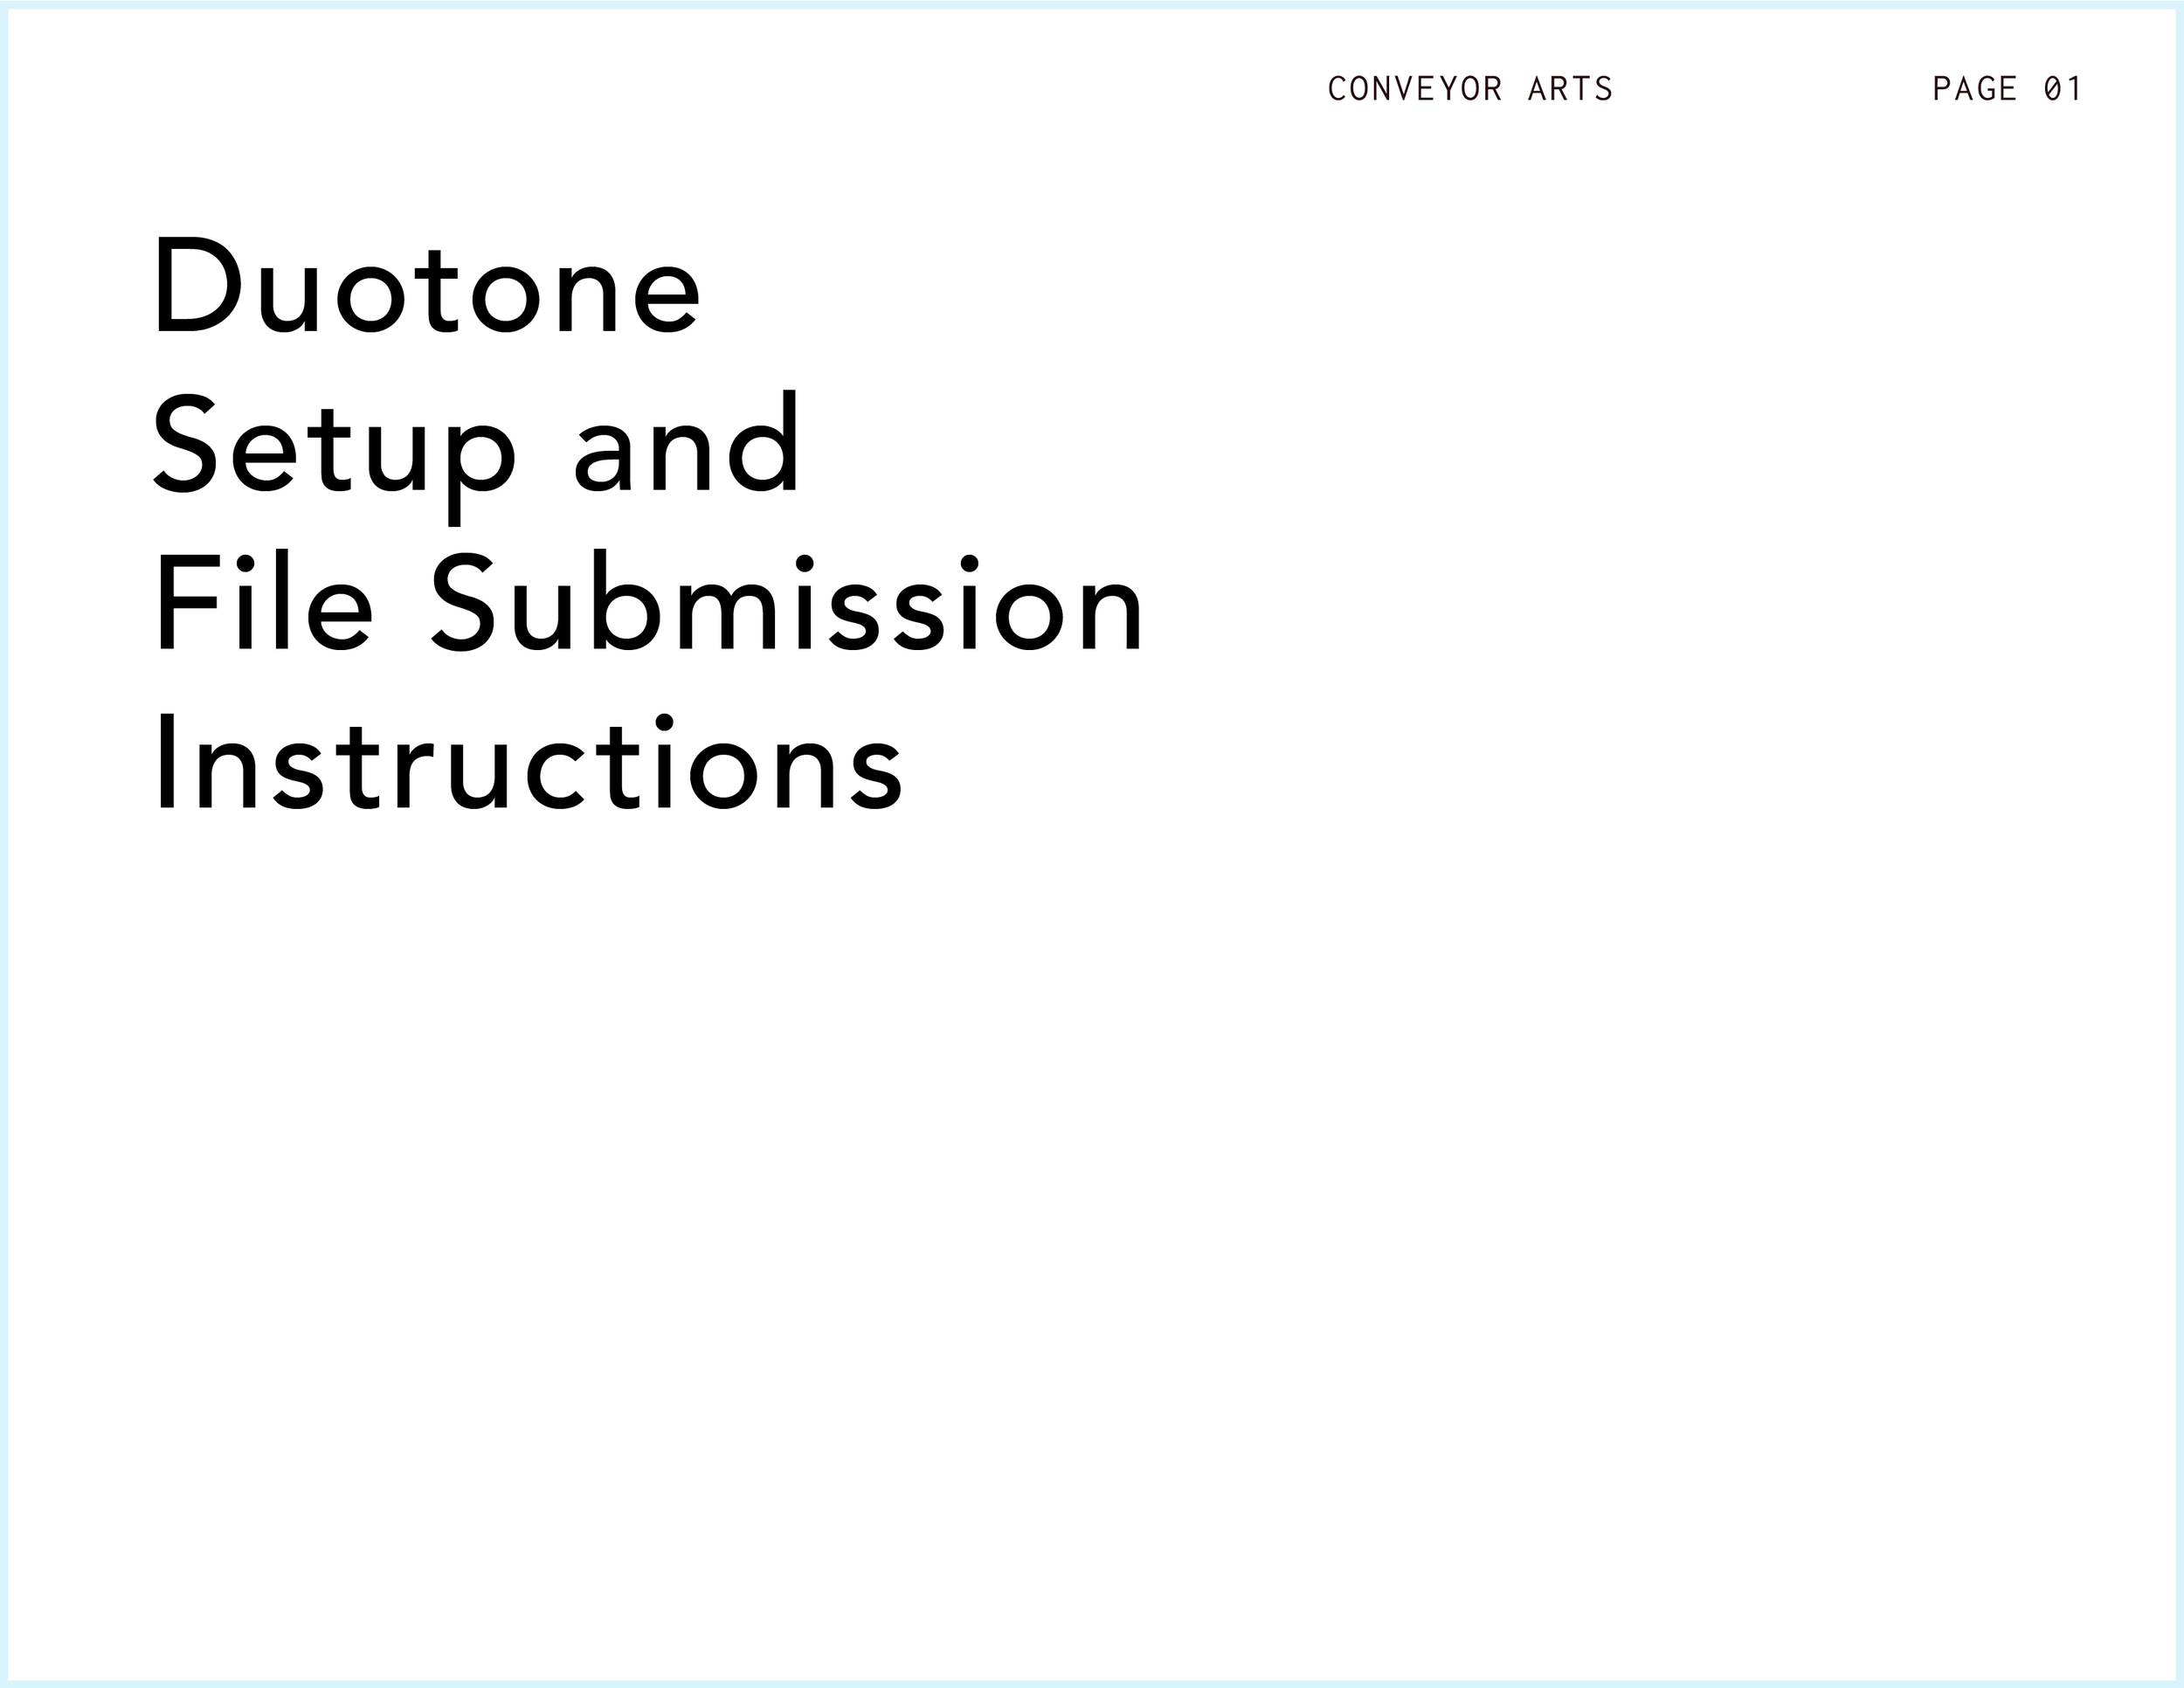 Duotone Setup Instructions_01.jpg